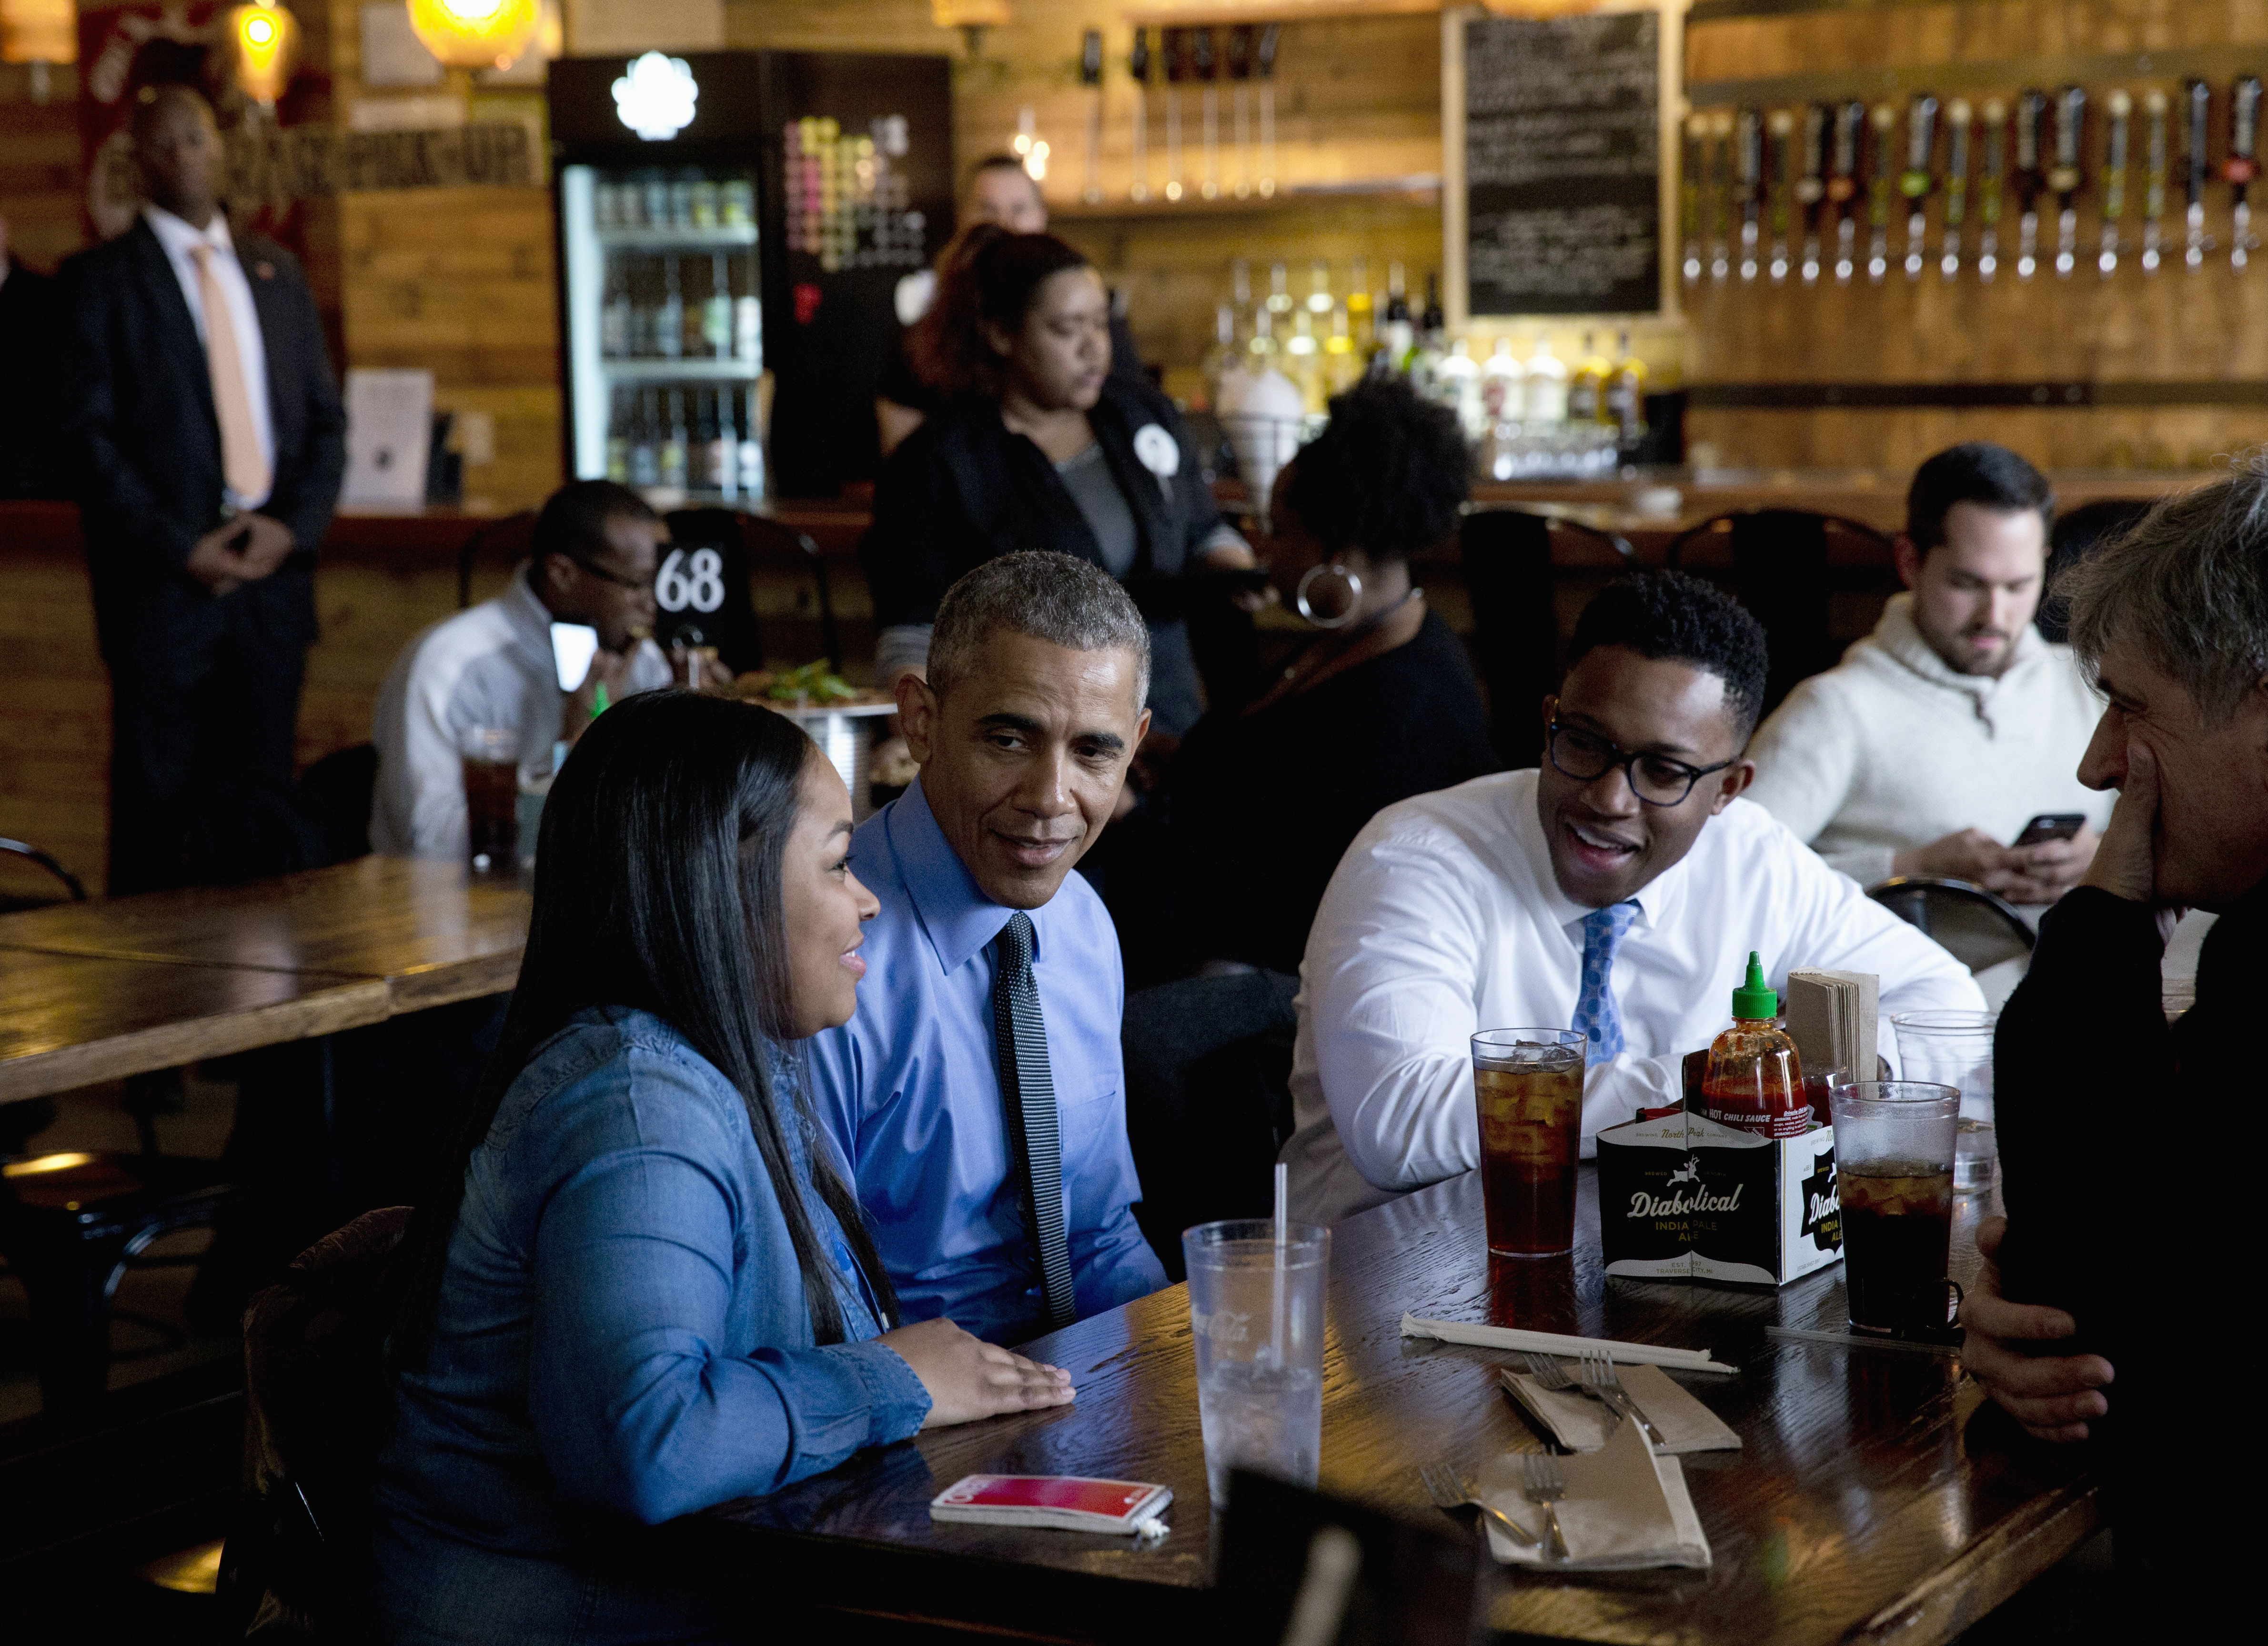 President Barack Obama has lunch at the Jolly Pumpkin Brewery in Detroit, Wednesday, Jan. 20, 2016, with from left, Teana Dowdell, autoworker at the General Motors Detroit-Hamtramck Assembly, Dr. Tolulope Sonuyi, Emergency medicine physician engaged with Detroit youth through violence prevention and intervention programs, part of Detroits efforts around the My Brothers Keeper initiative and Tom Kartsotis, founder, Shinola, right.